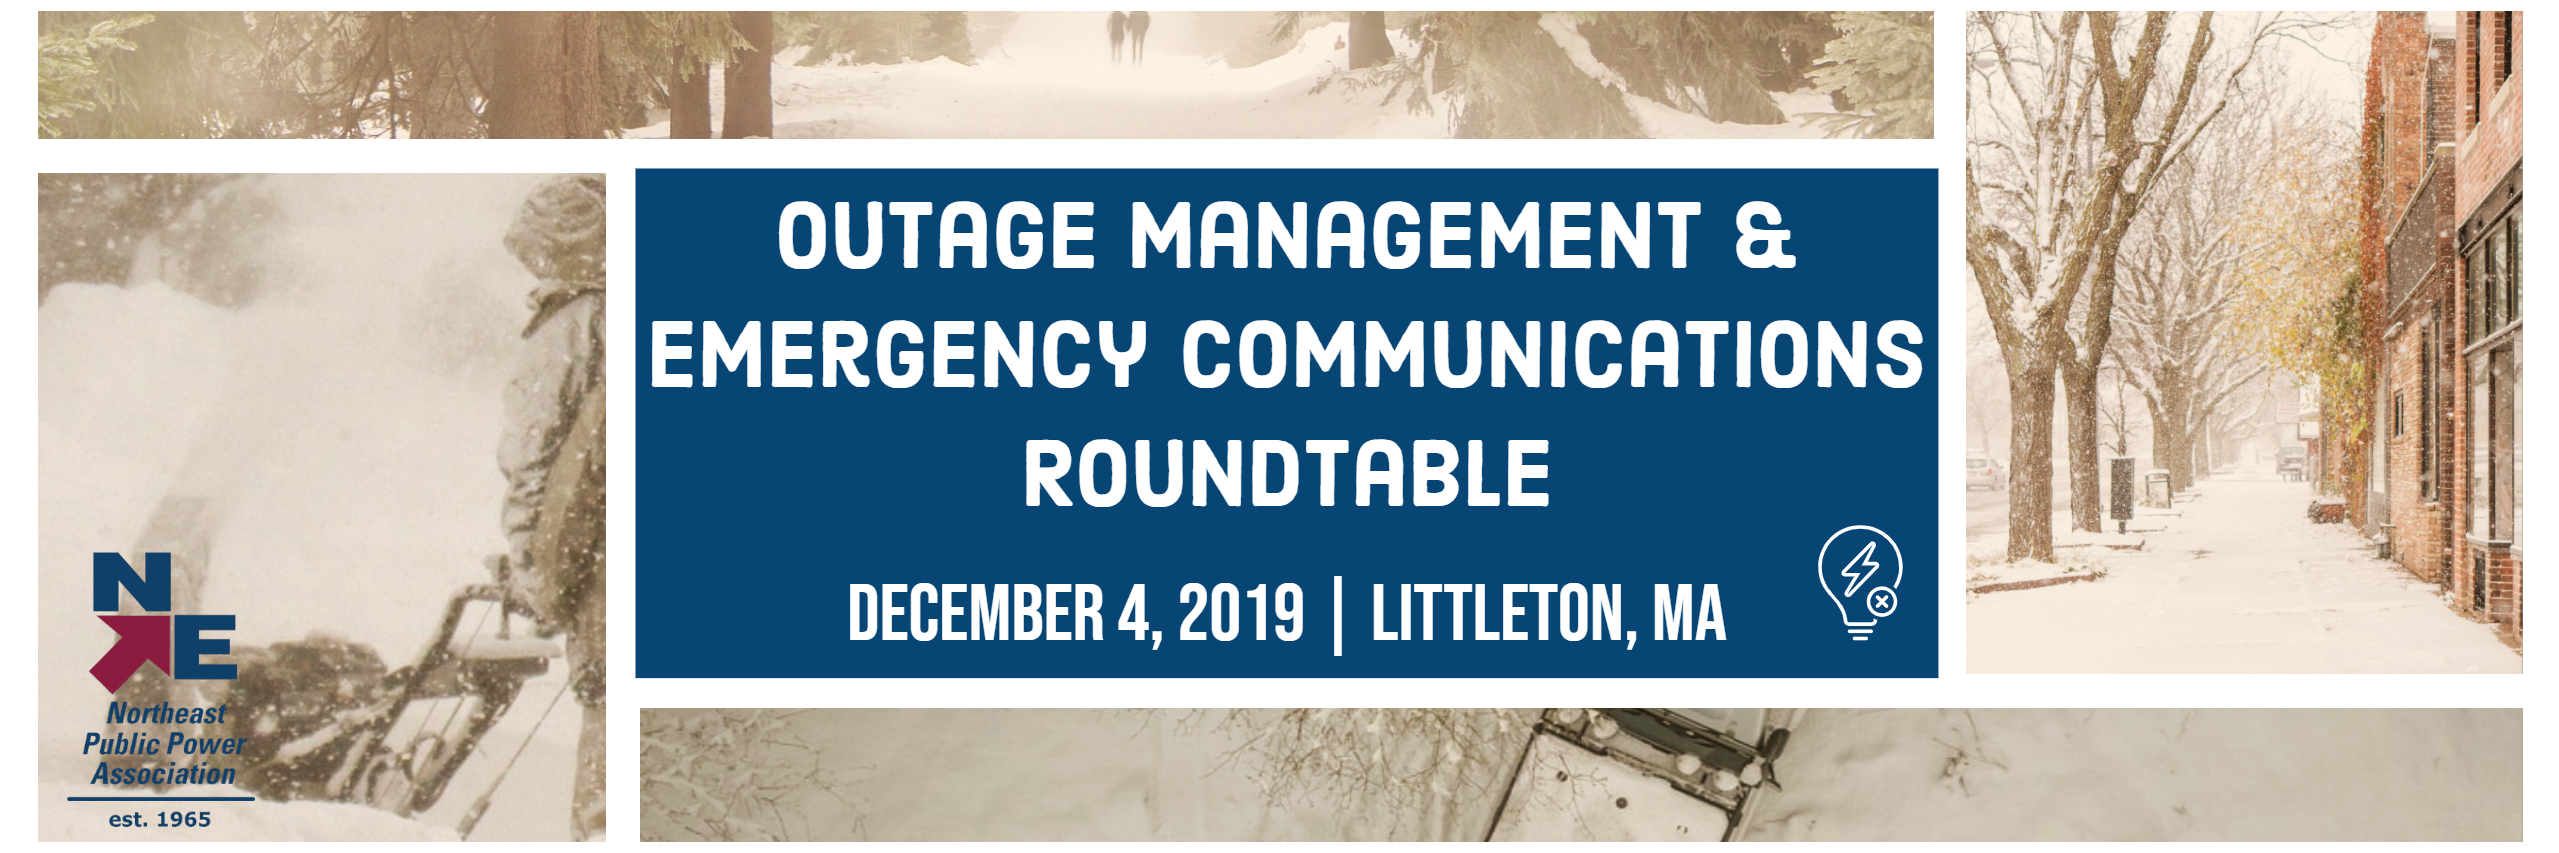 Outage Mgt RT Banner 2